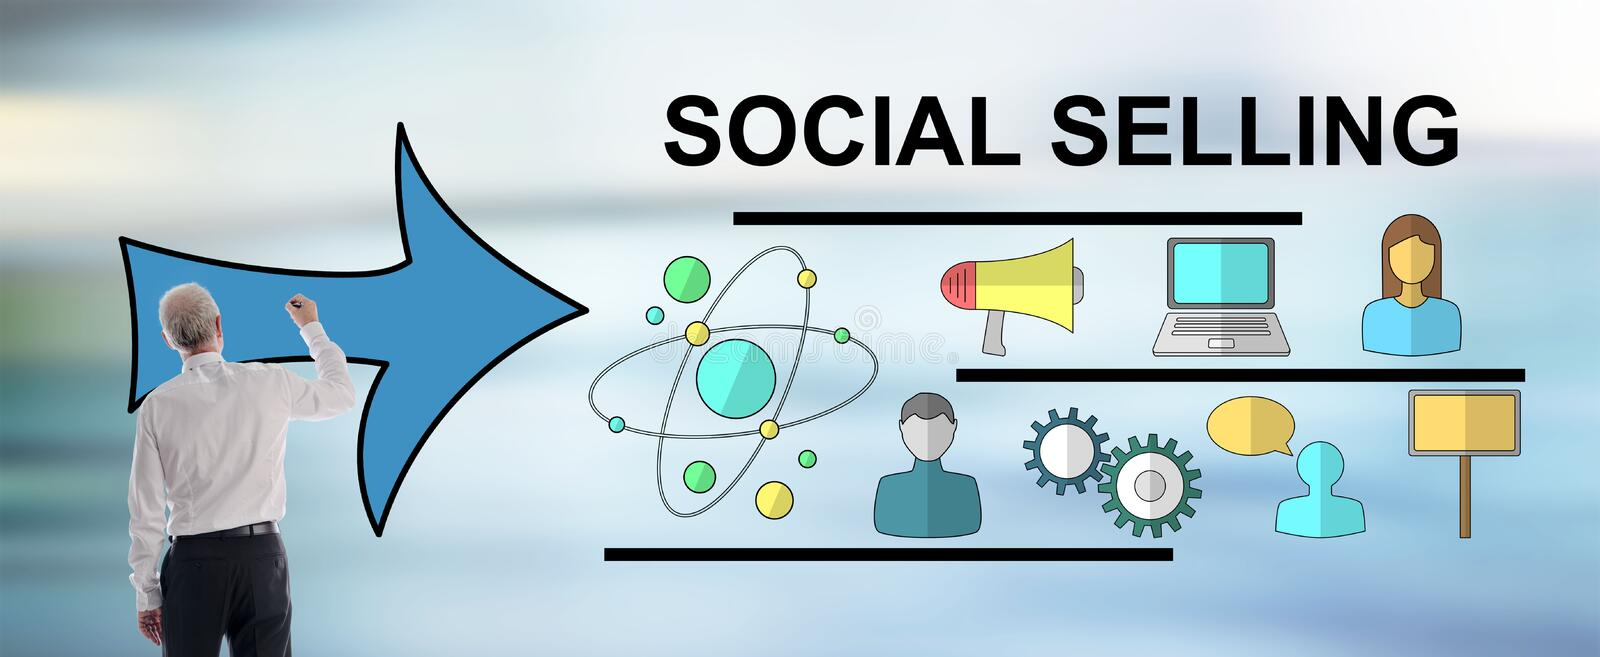 Social selling concept drawn by a man royalty free stock photos